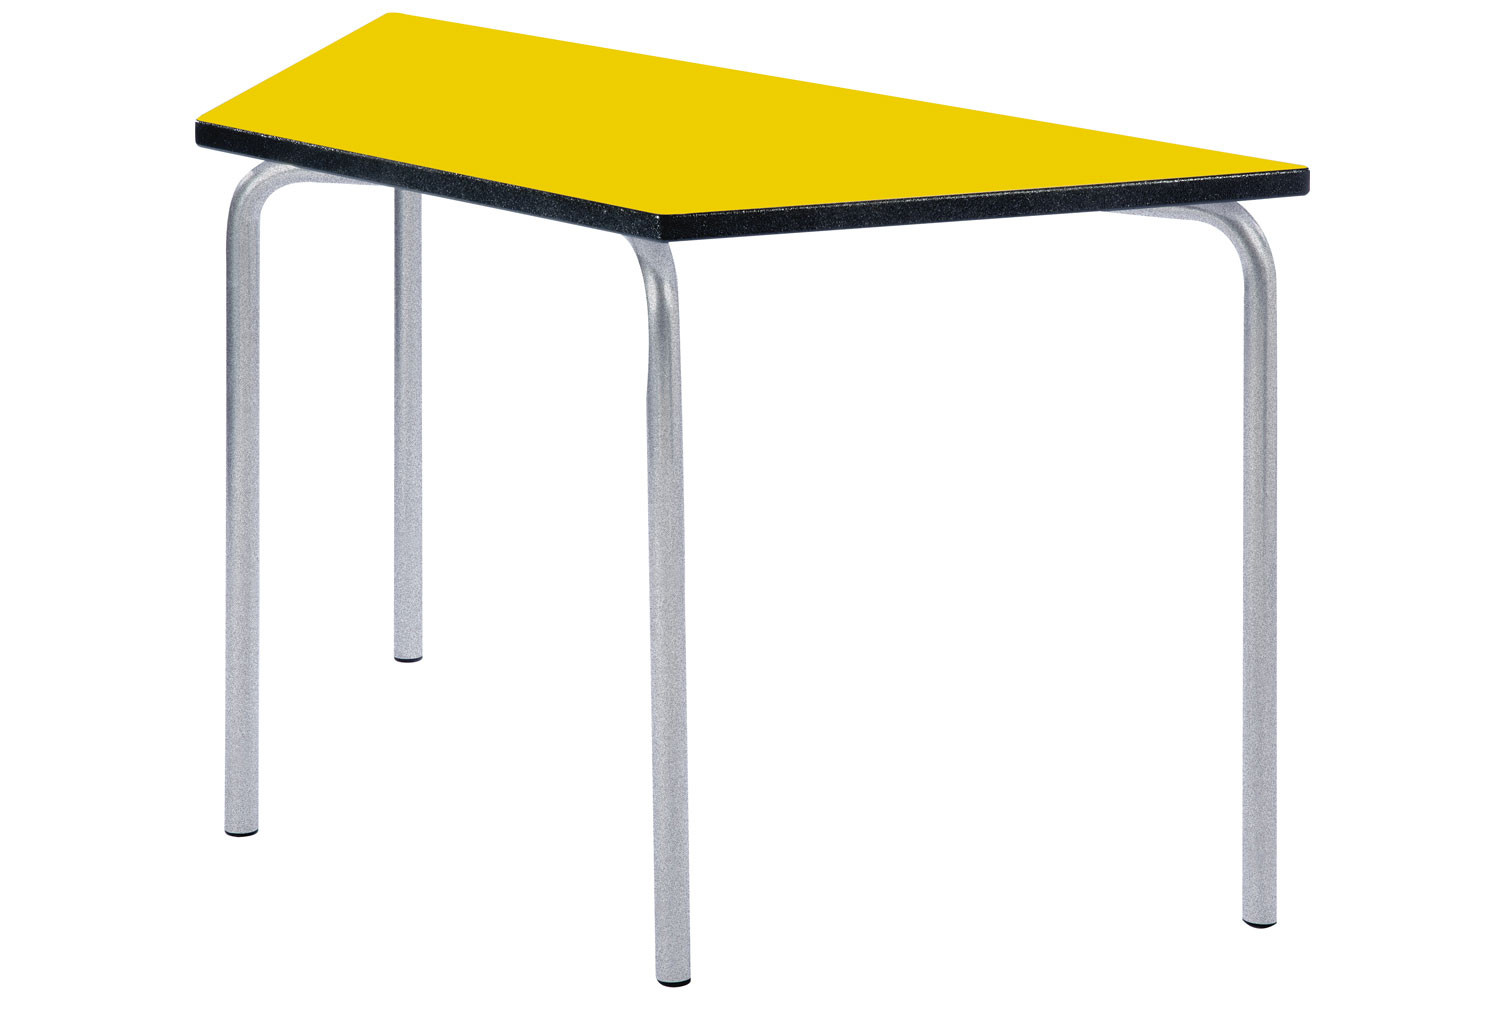 Equation Trapezoidal Classroom Tables 14+ Years